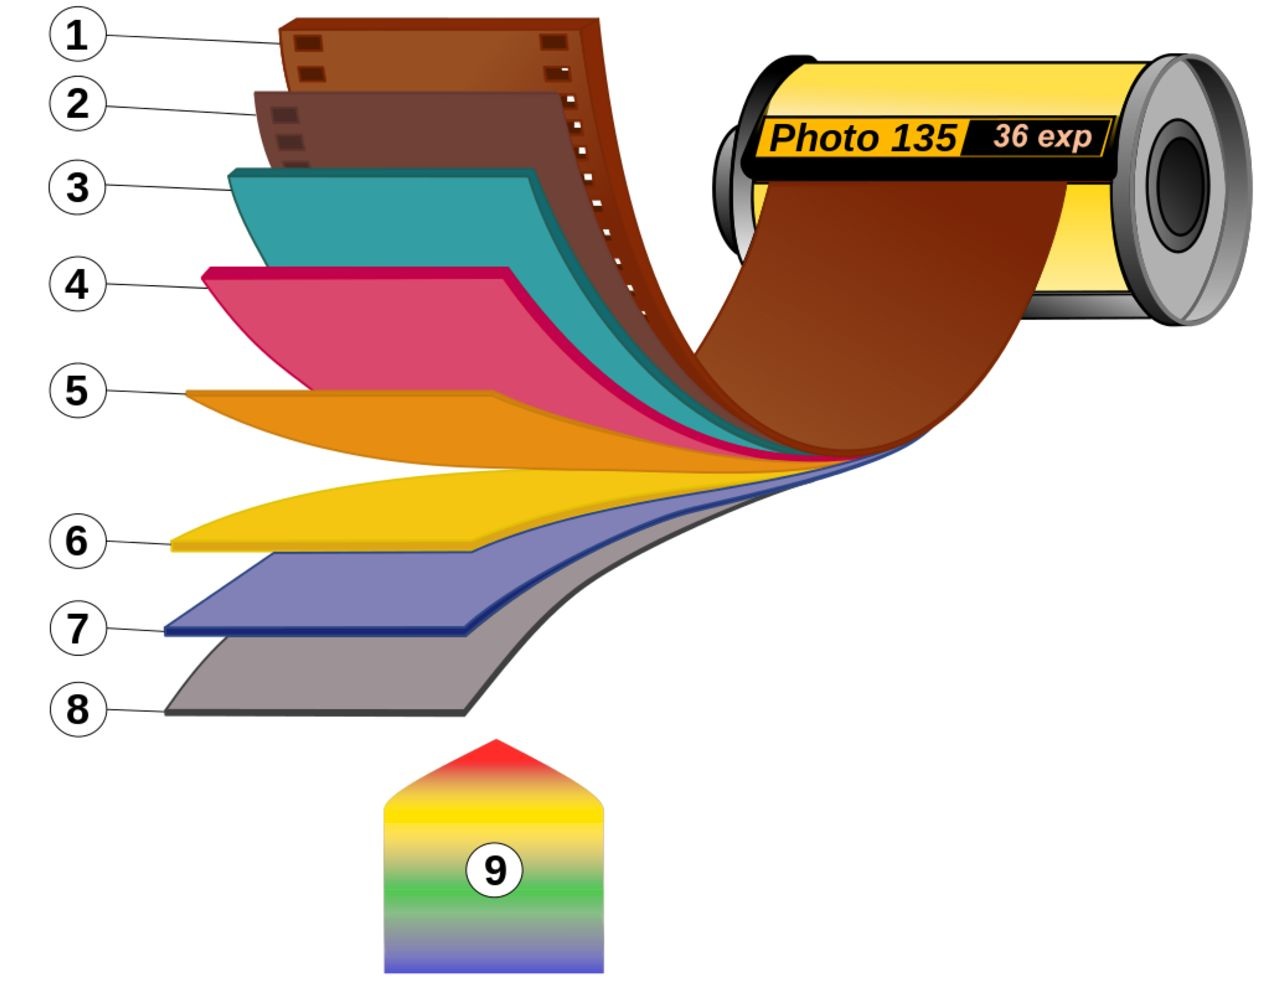 1. Film base; 2. Adhesive layer; 3. Red light sensitive layer; 4. Green light sensitive layer; 5. Yellow filter; 6. Blue light sensitive layer; 7. UV Filter; 8. Protective layer; 9. Visible light (when shot as regular, non-red scale film).